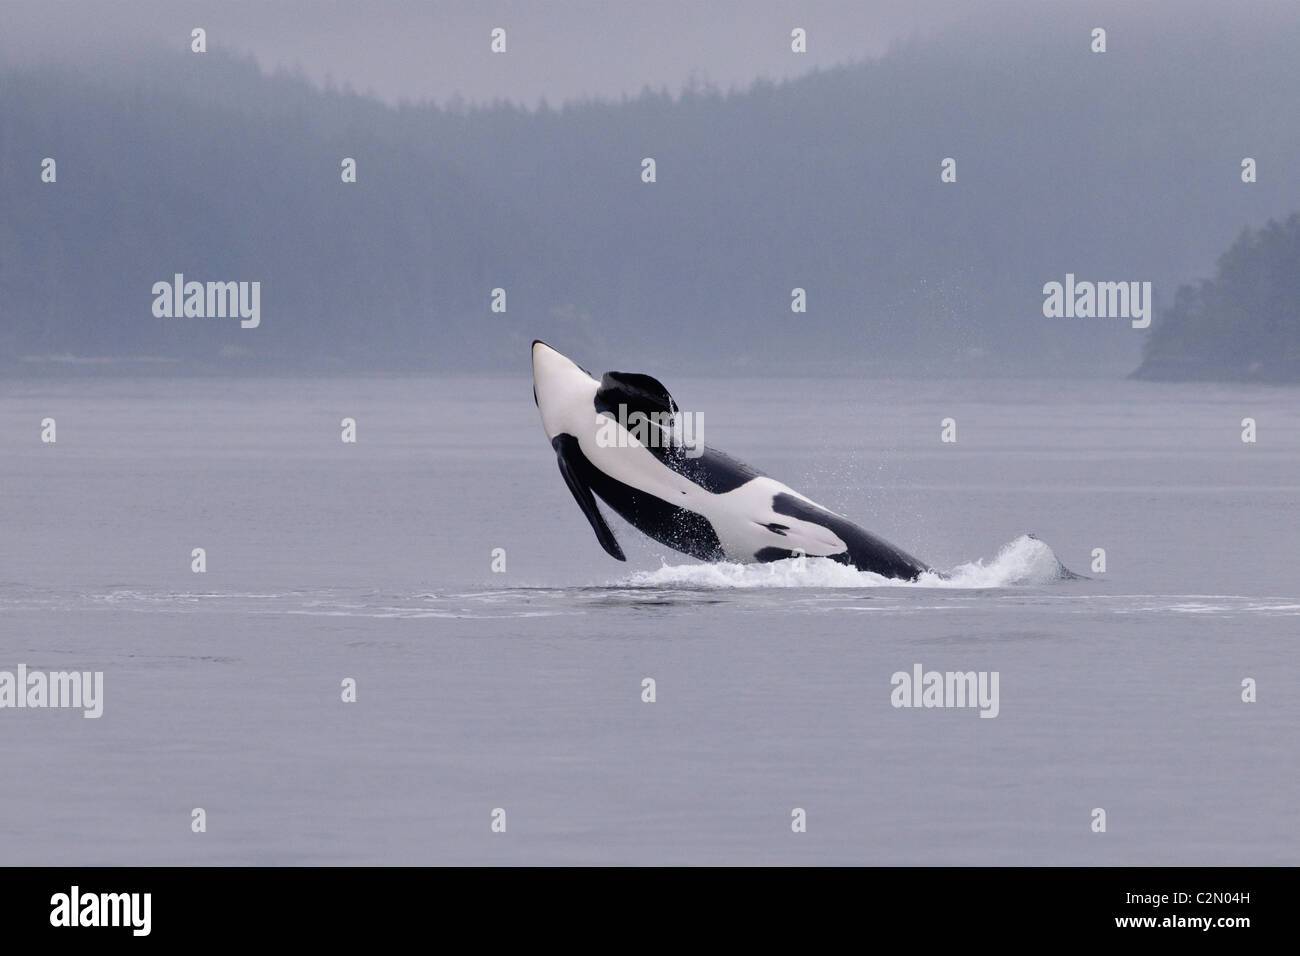 Orca or Killer Whale breaching, jumping, splashing, Vancouver Island, Canada - Stock Image